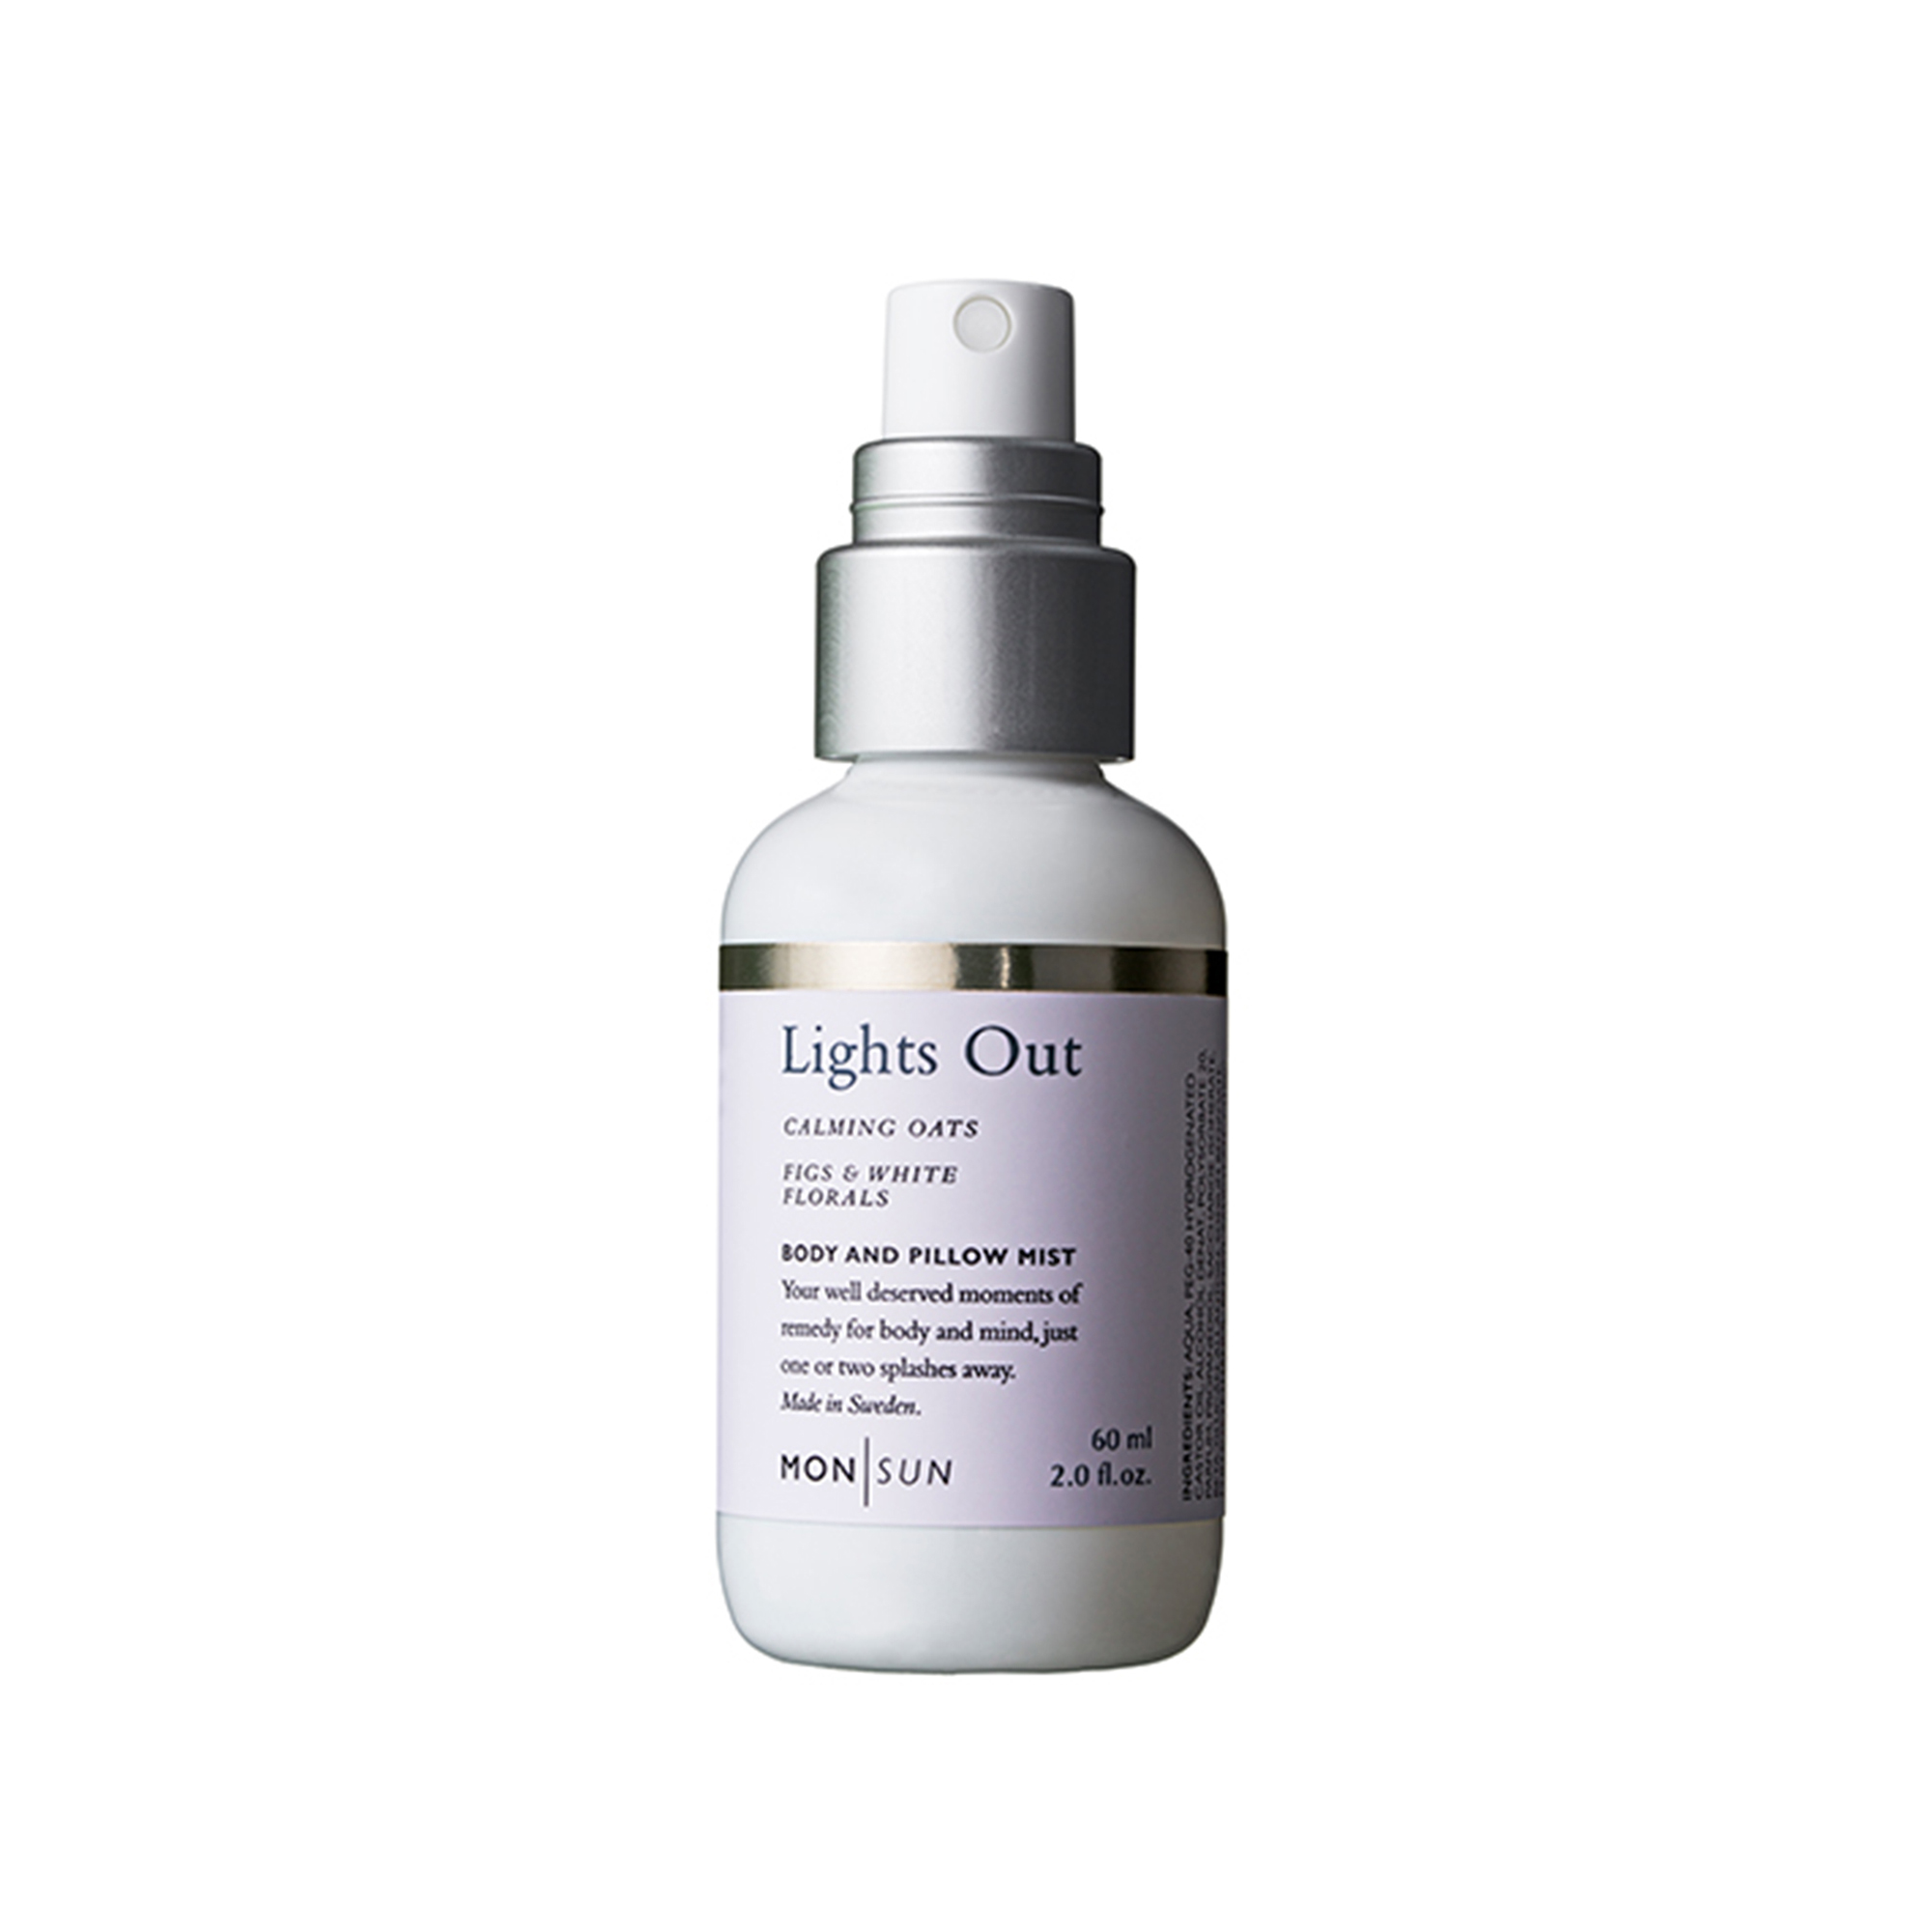 Light Out Calming Oats Body & Pillow Mist